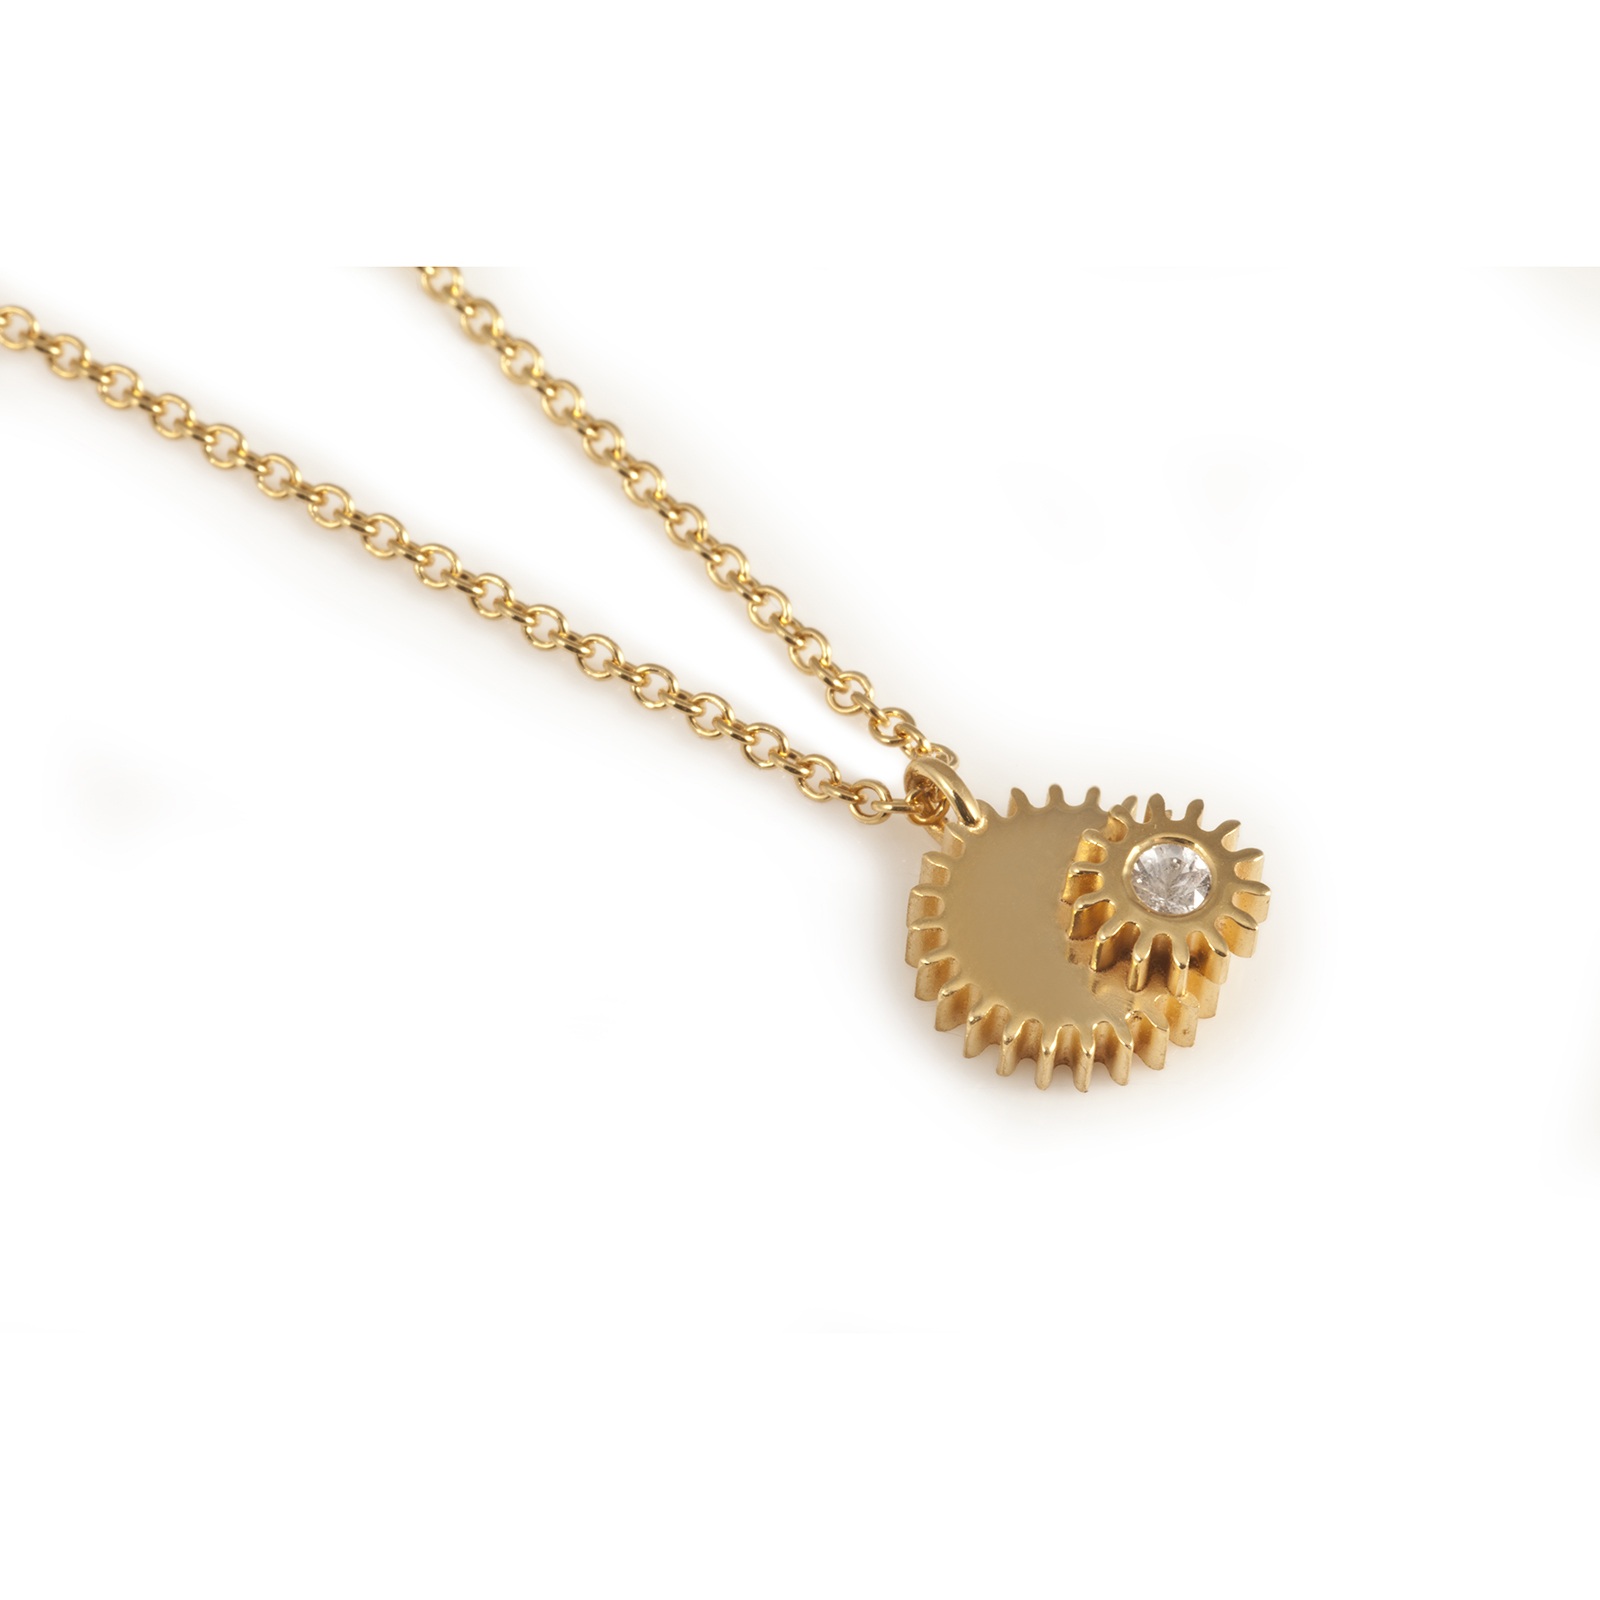 Double Winding Wheel Necklace Gold and Sapp.jpg